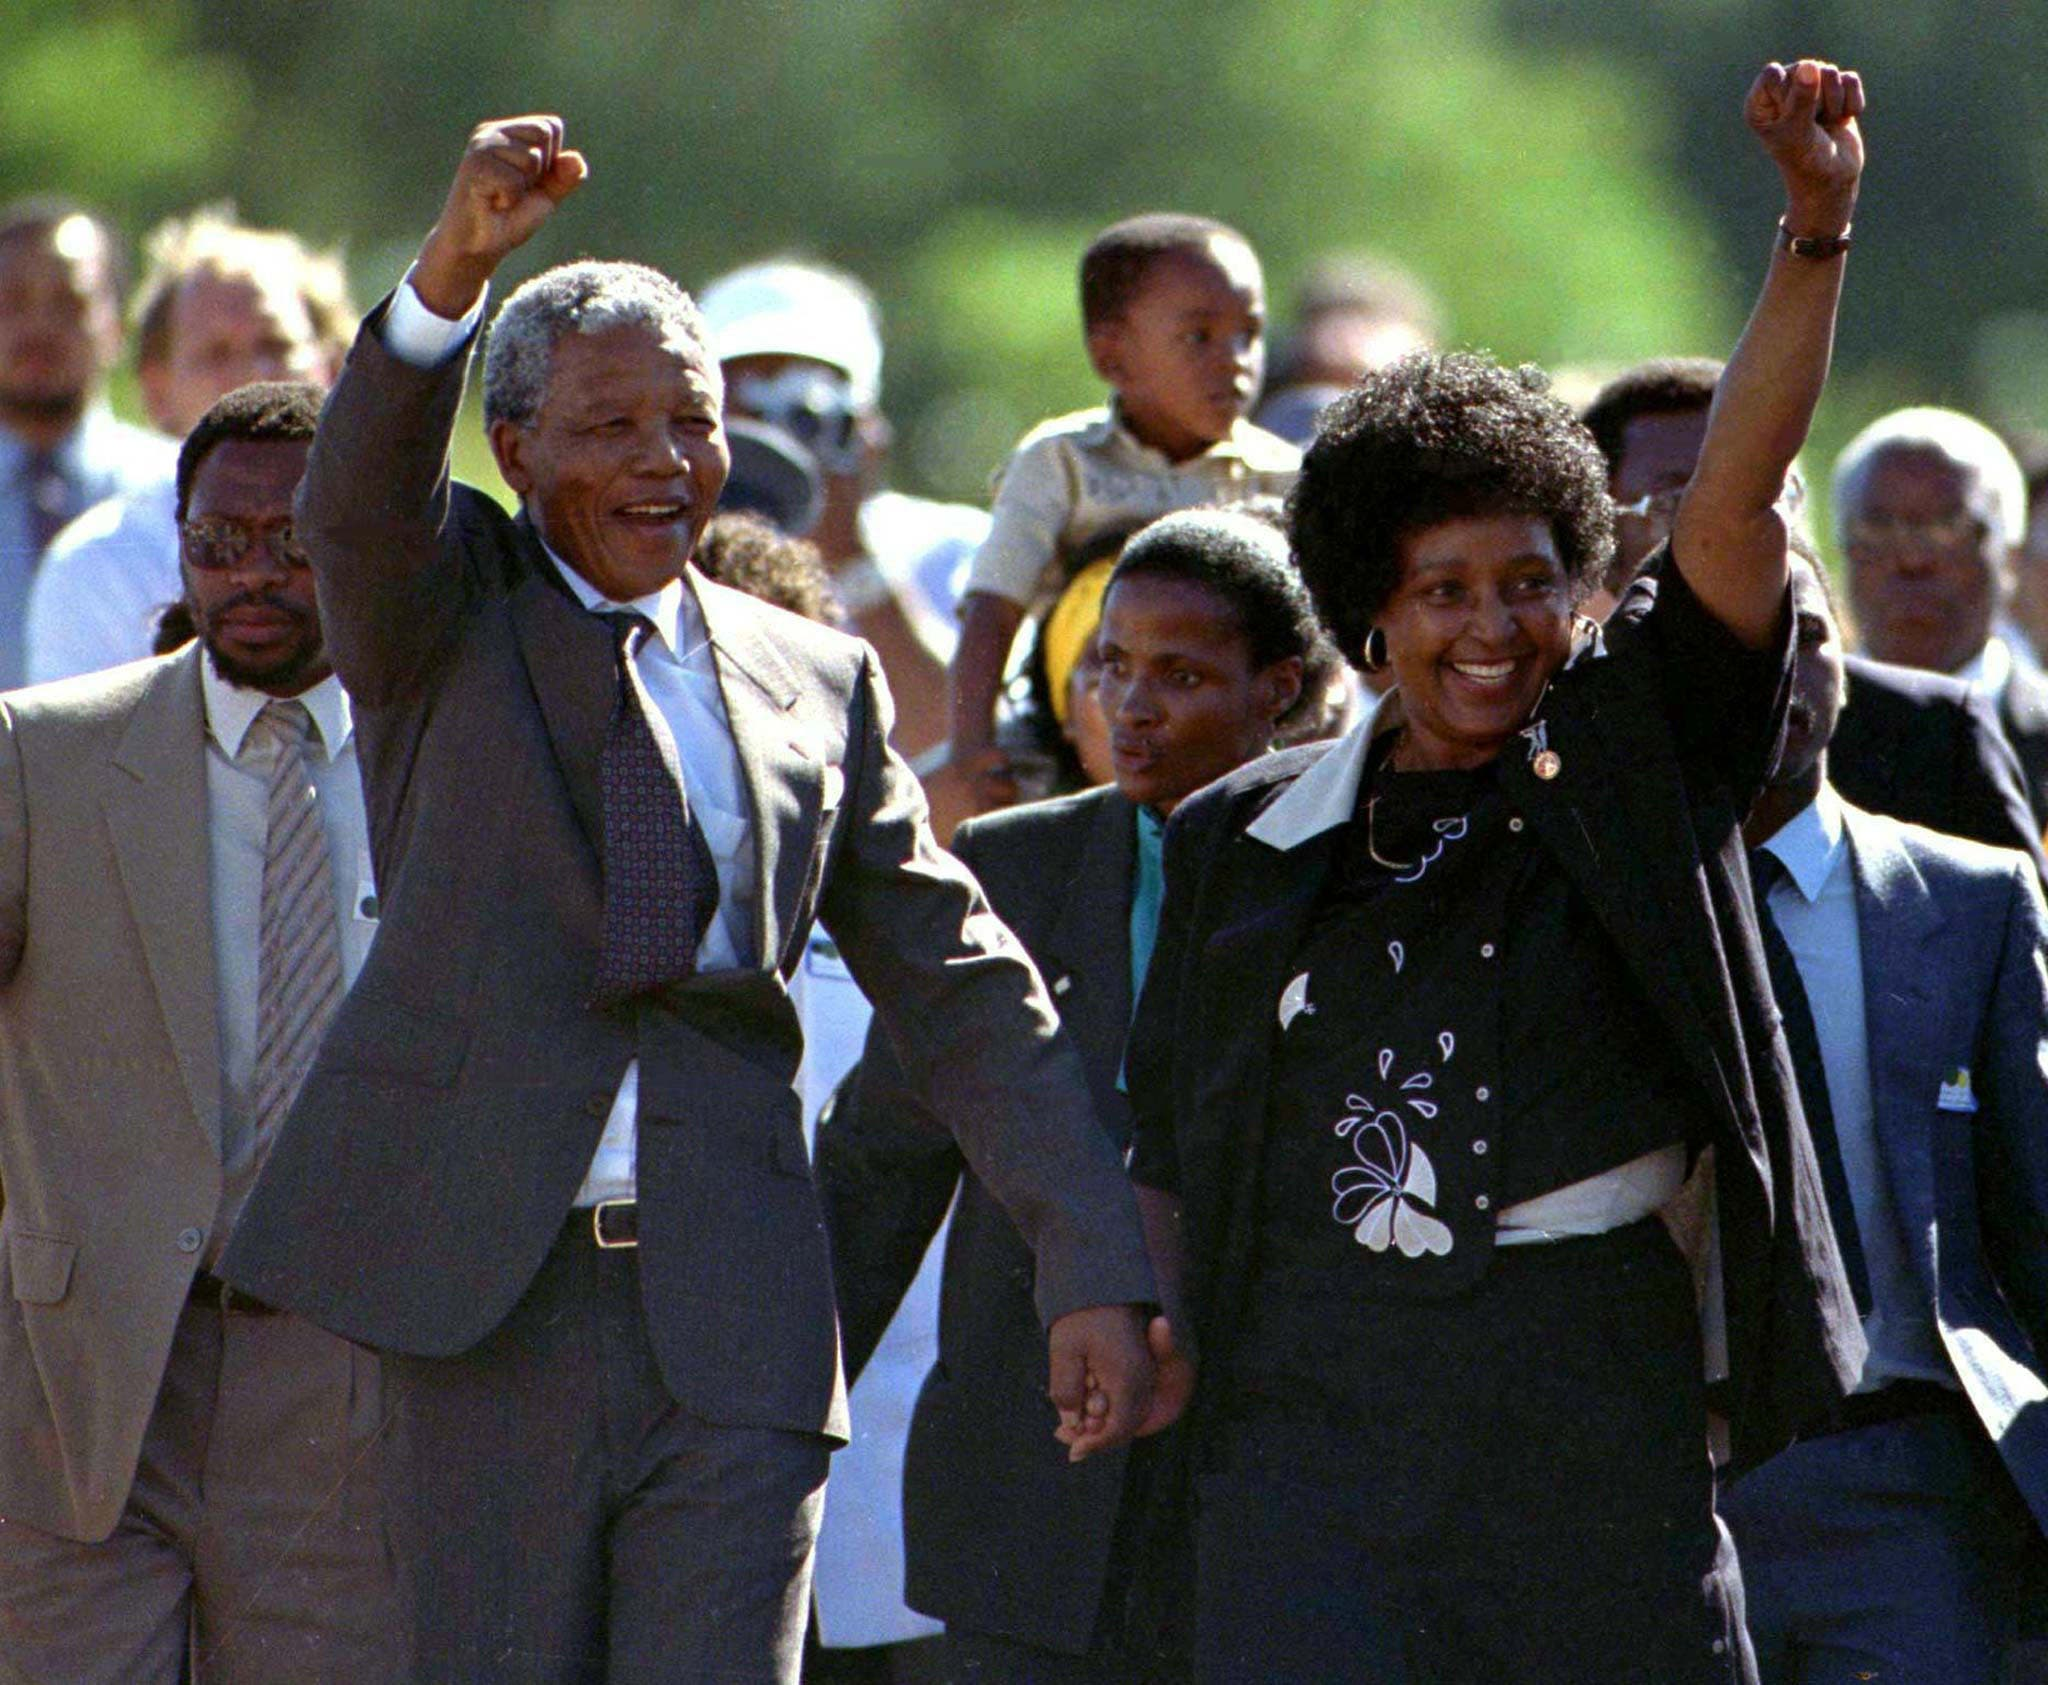 The life and times of Nelson Mandela